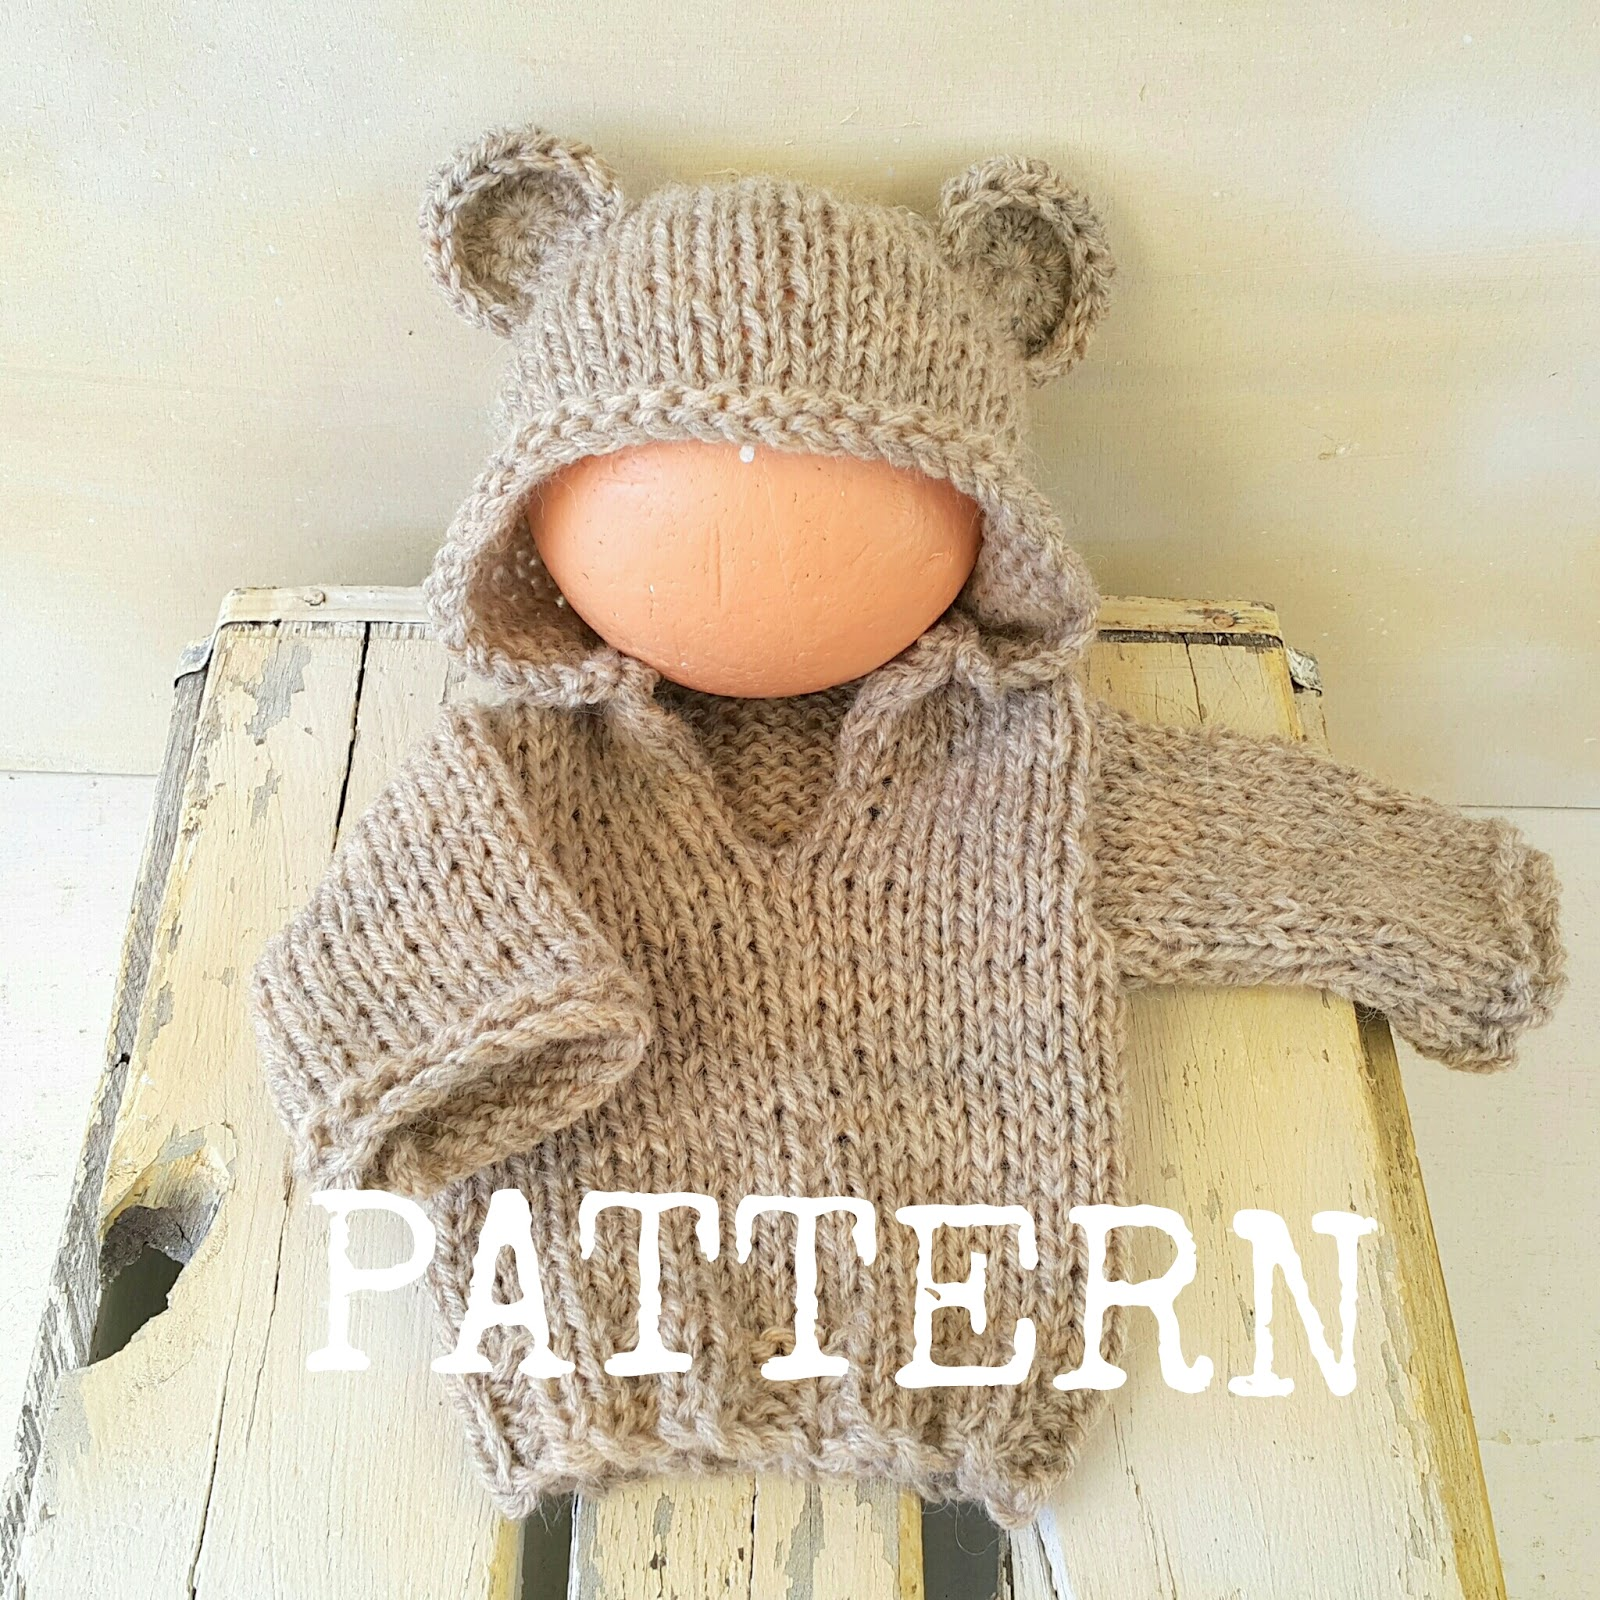 Crafty Stuff Baby Knits and Photo Props: Baby Bear Hoodie Sweater Knitting Pa...